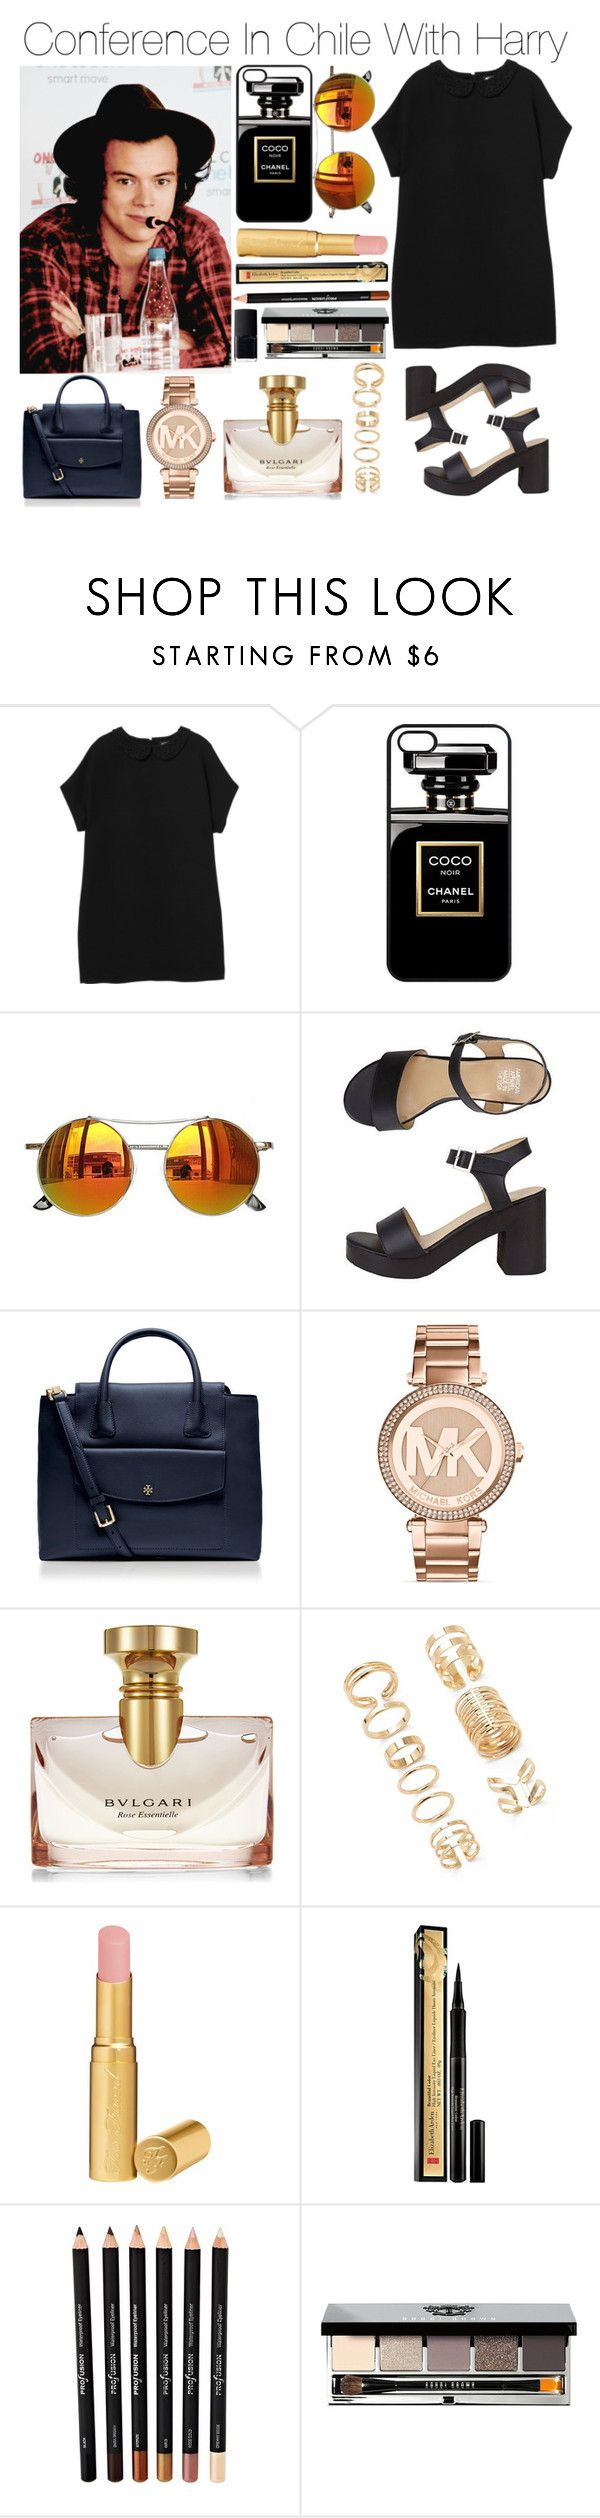 """""""Conference In Chile With Harry"""" by lovingharryandjustin ❤ liked on Polyvore featuring Monki, Chicnova Fashion, American Apparel, Tory Burch, Michael Kors, Bulgari, Forever 21, Too Faced Cosmetics, Elizabeth Arden and Bobbi Brown Cosmetics"""